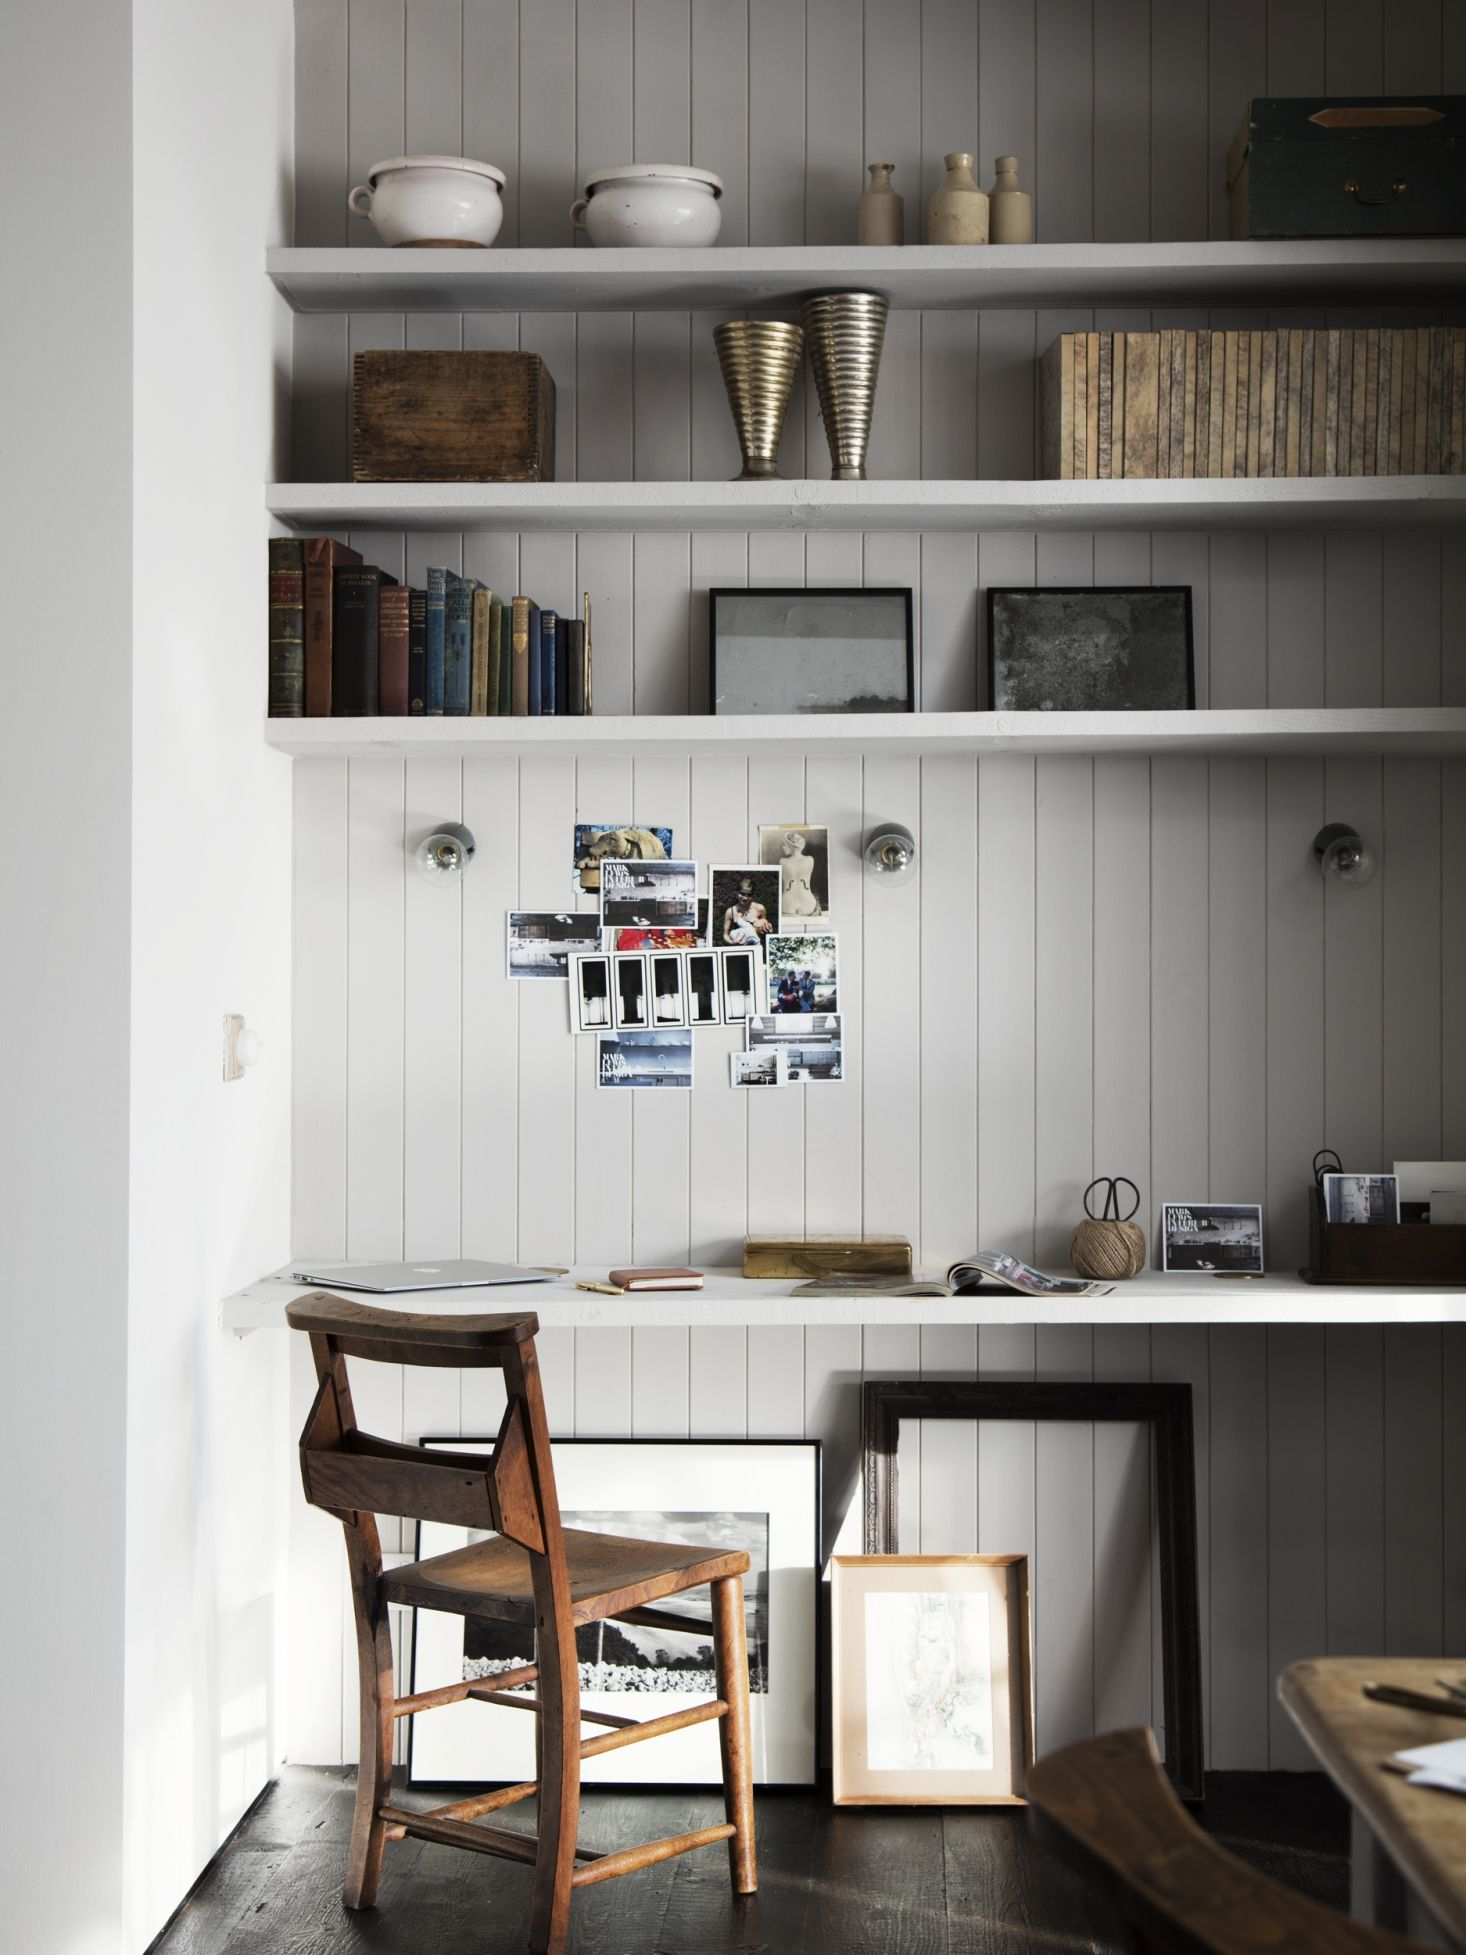 New-old design in an eat-in kitchen addition by Mark Lewis | Live ...